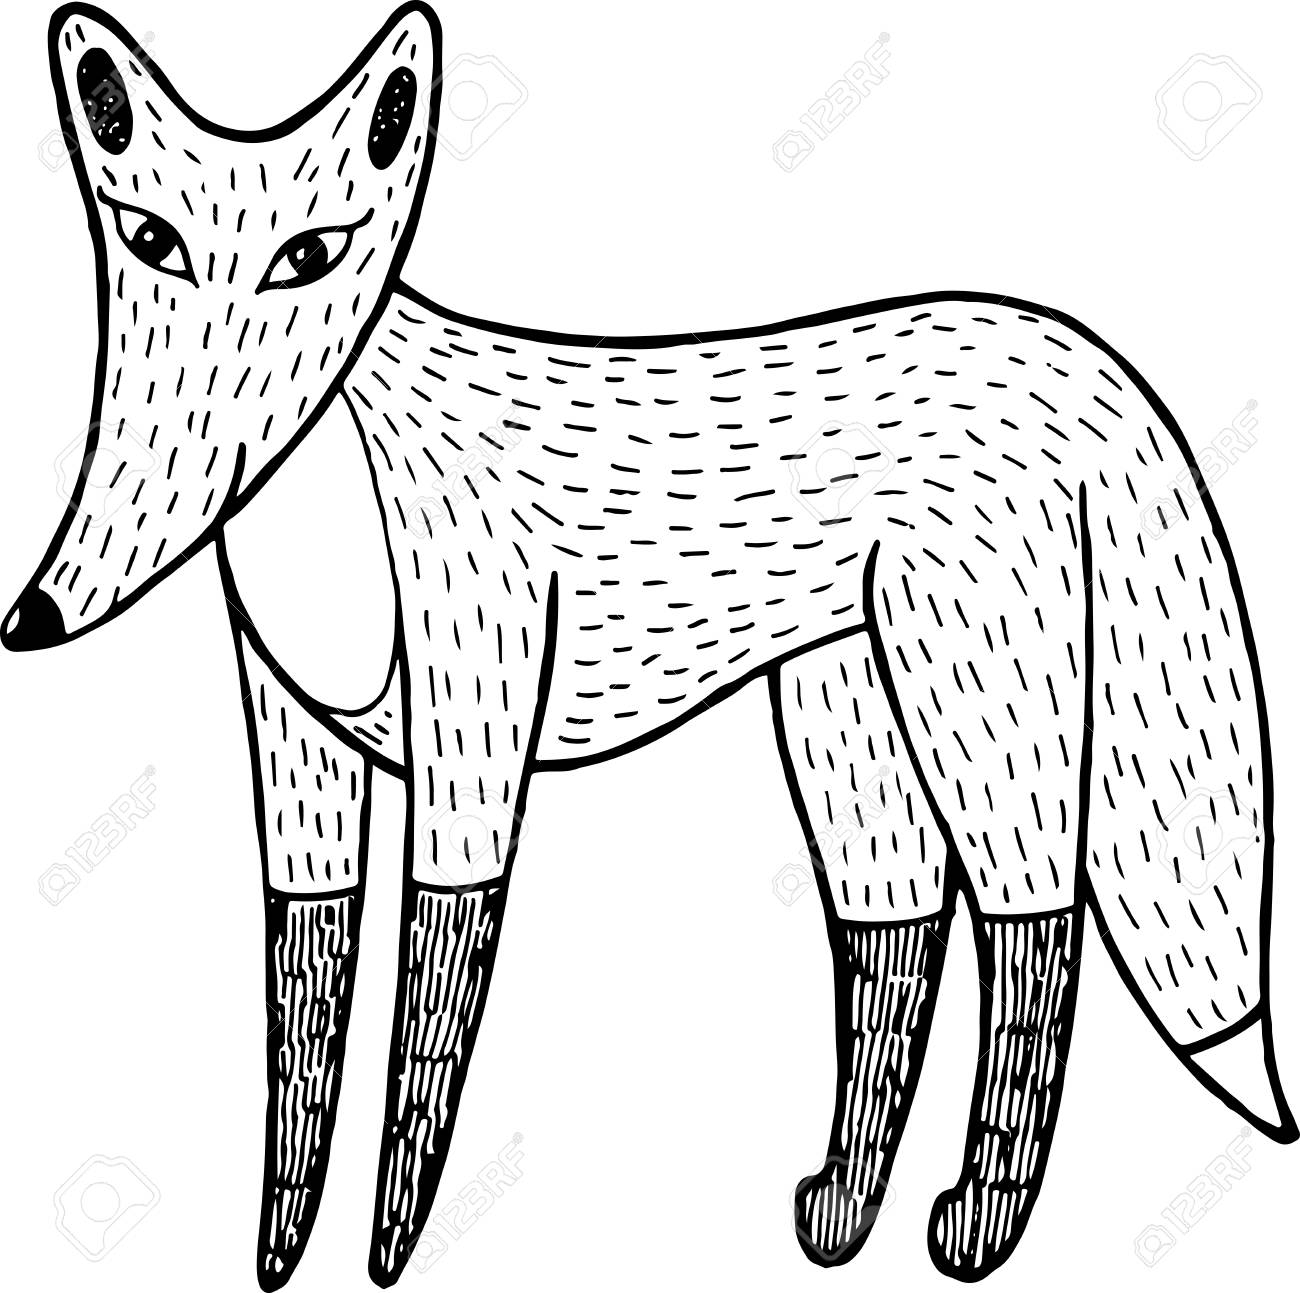 Fox - ink graphic artwork for adult and children coloring books. Vector  illustration.